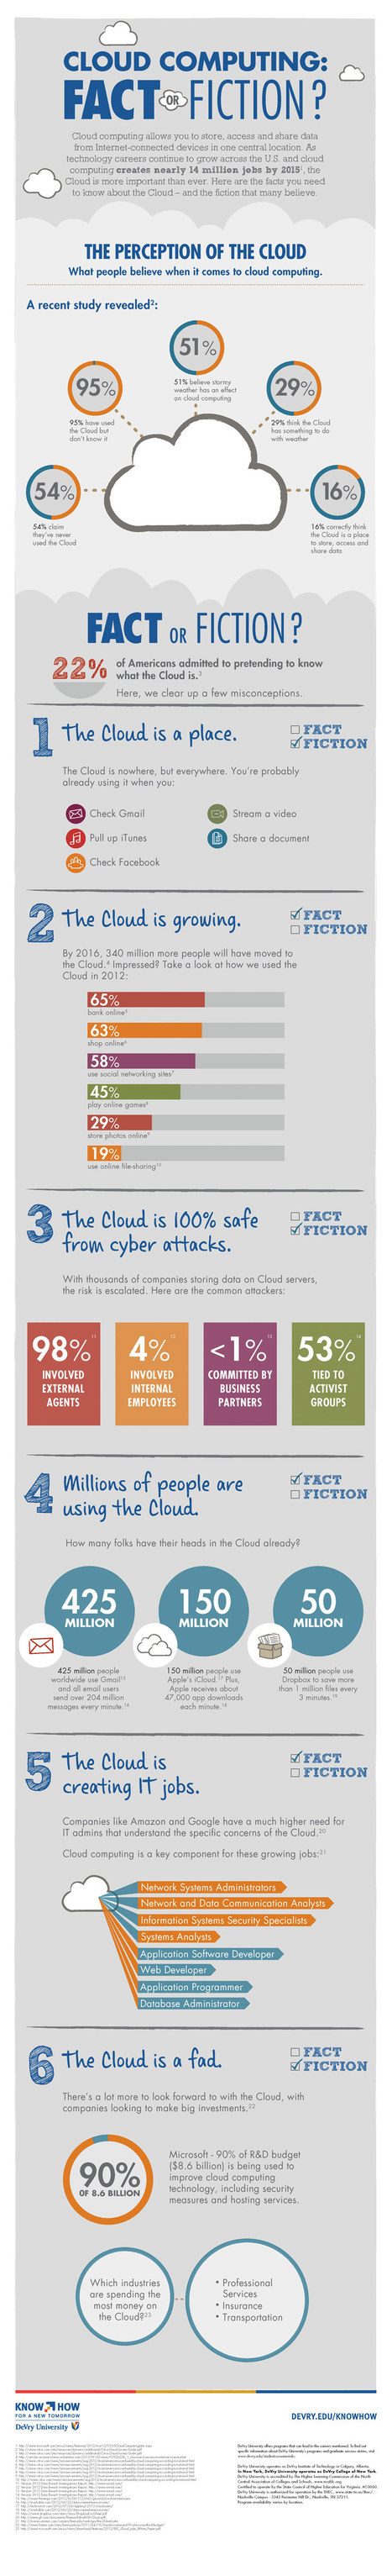 Is Cloud Computing a Fact or Fiction? – infographic | WEBOLUTION! | Scoop.it